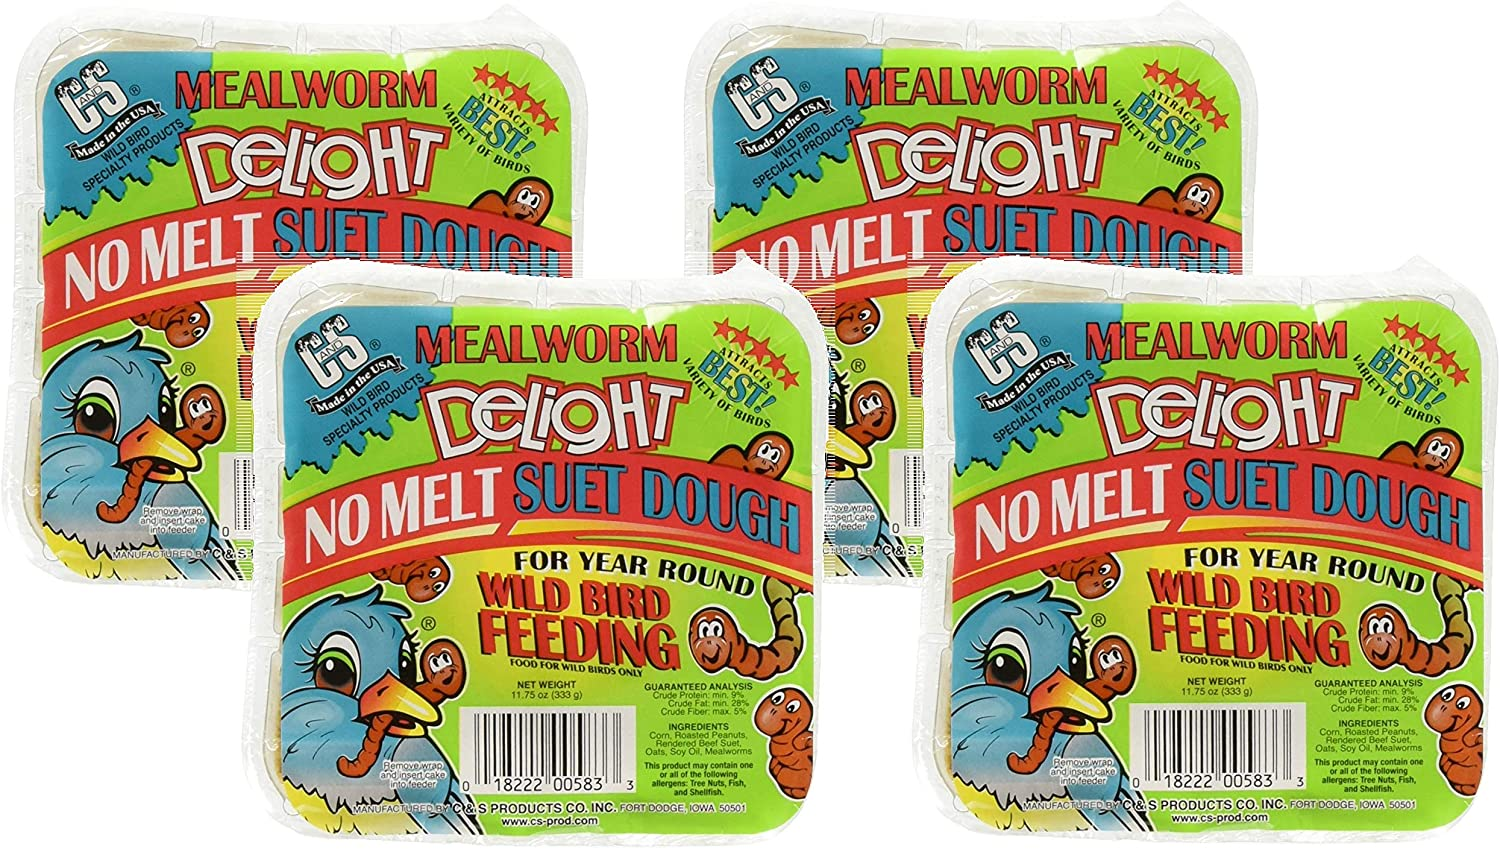 C&S Products 4 Pack of Mealworm Delight No Melt Suet Dough, 11.75 Ounces each